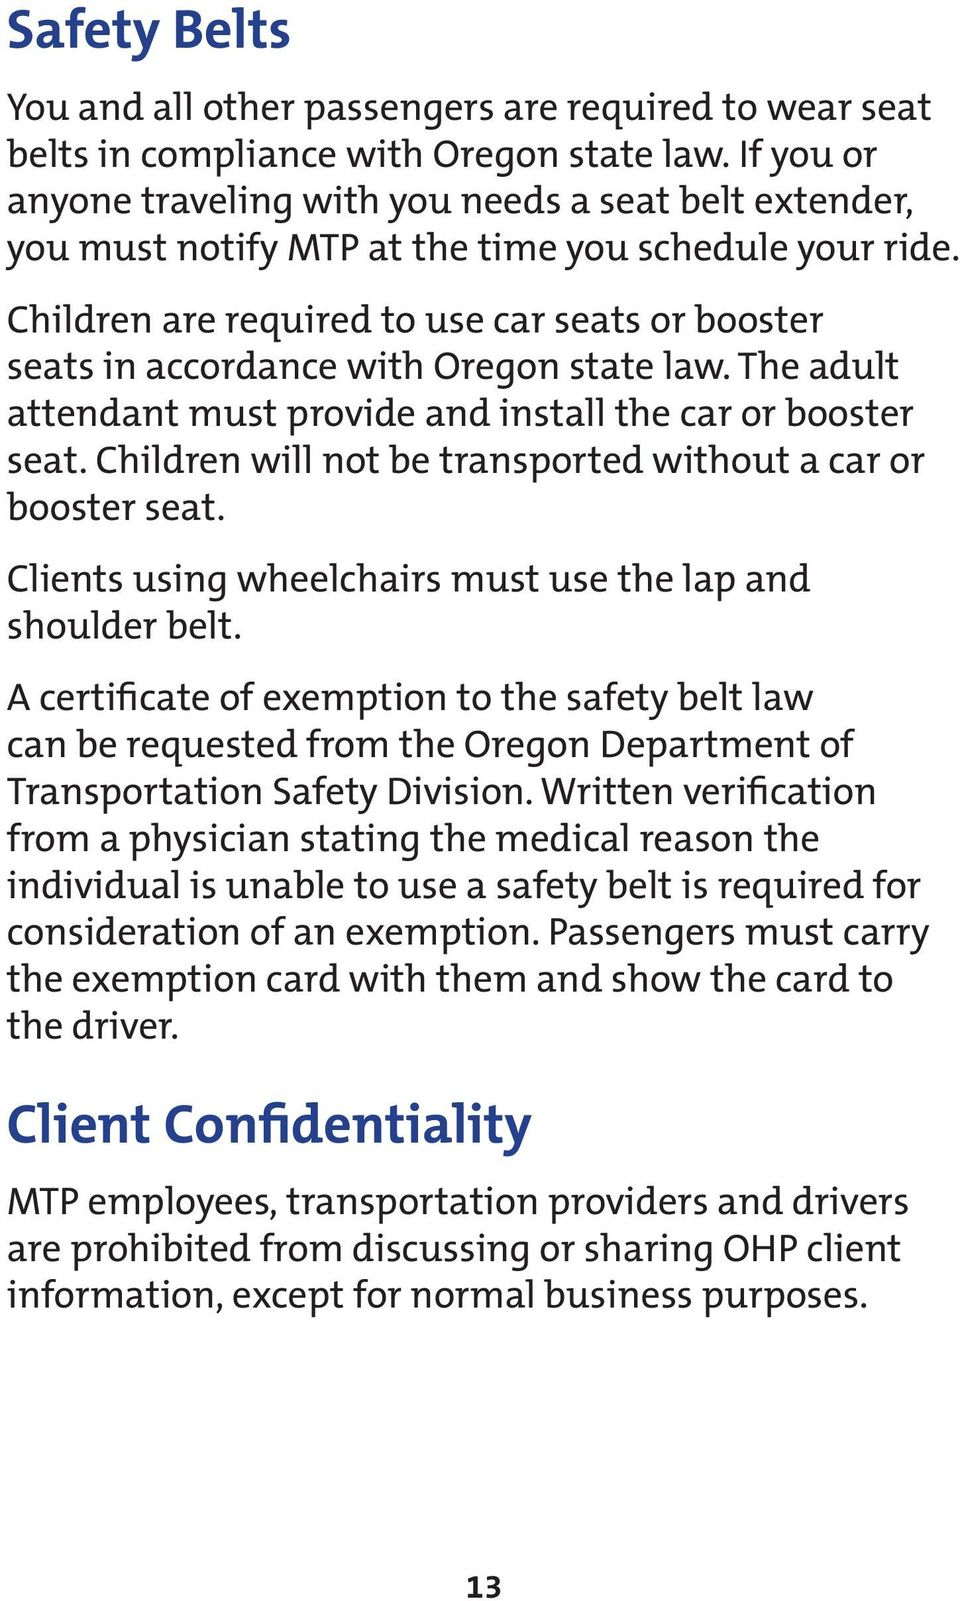 Children are required to use car seats or booster seats in accordance with Oregon state law. The adult attendant must provide and install the car or booster seat.